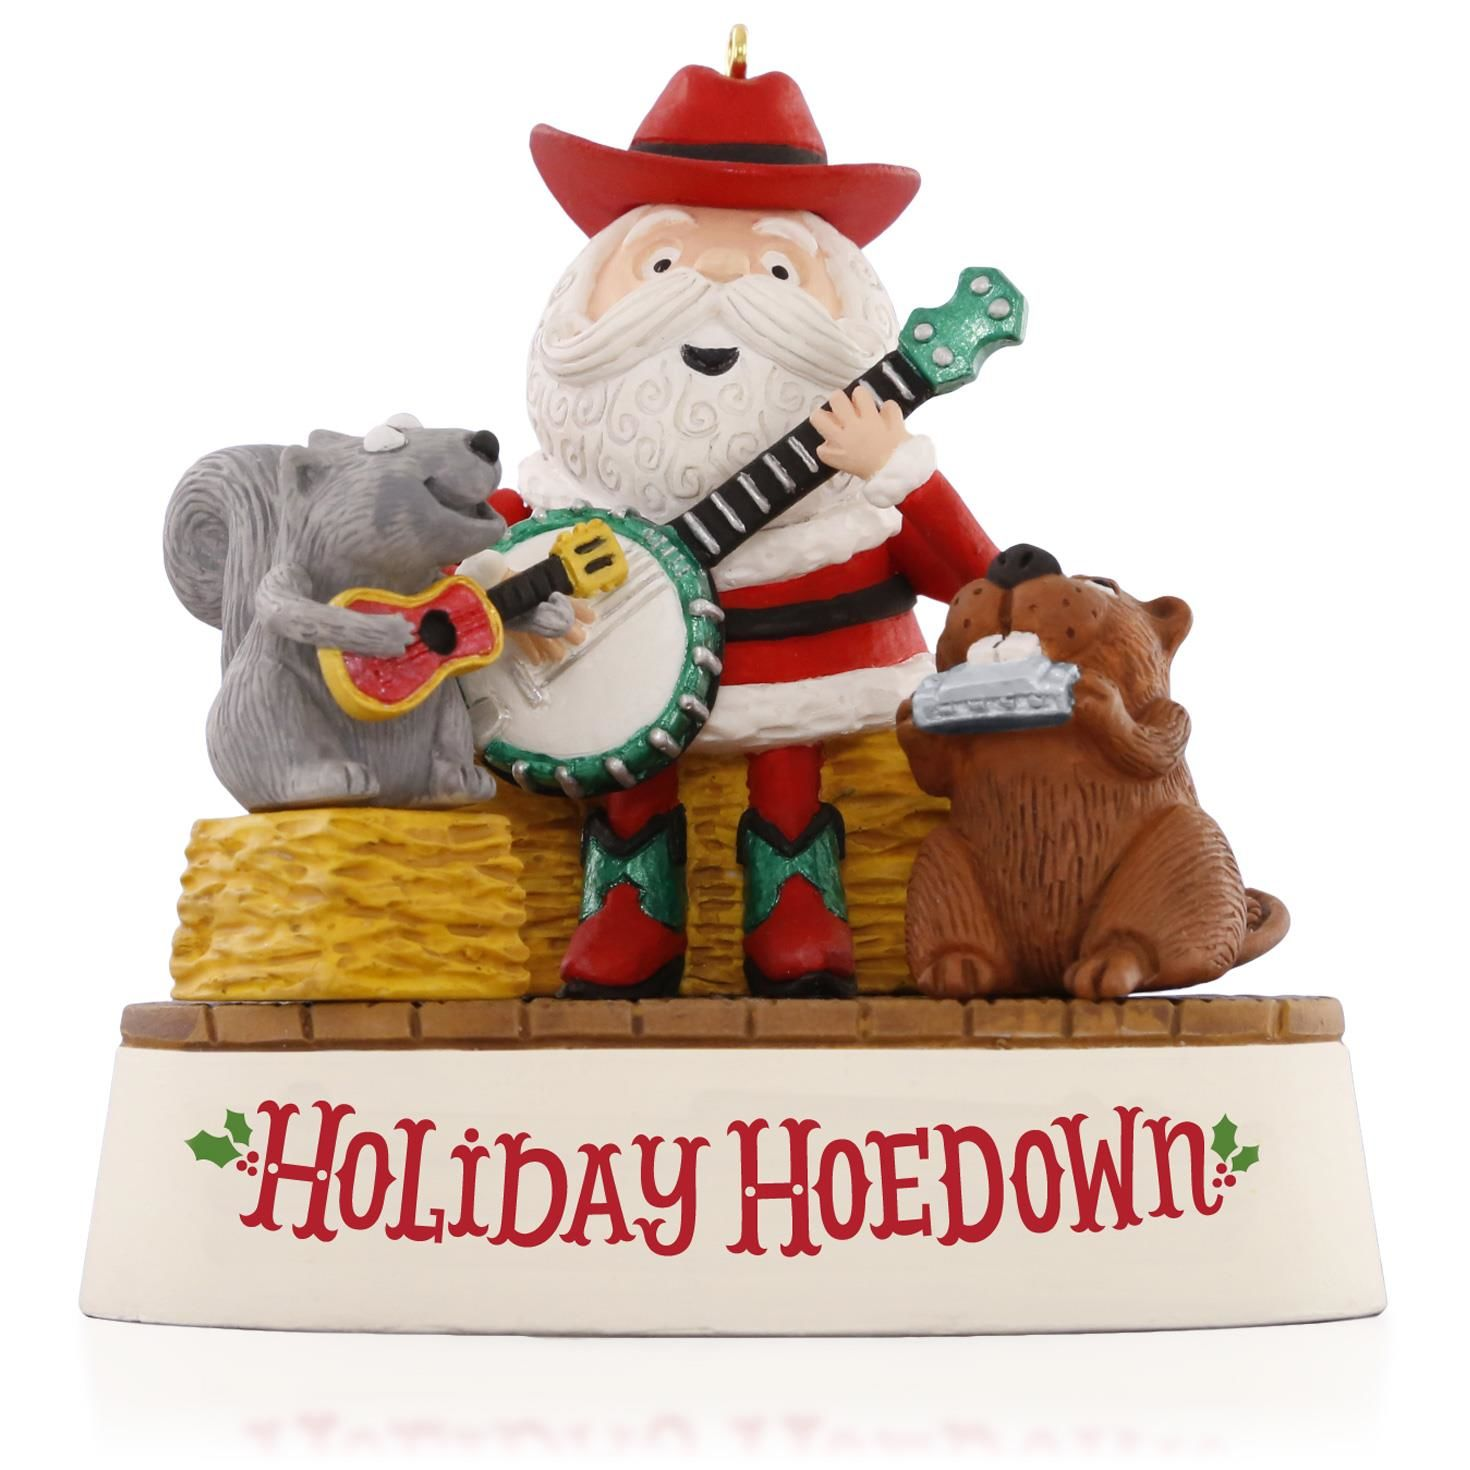 2015 Holiday Hoedown Hallmark Keepsake Ornament - Hooked ...